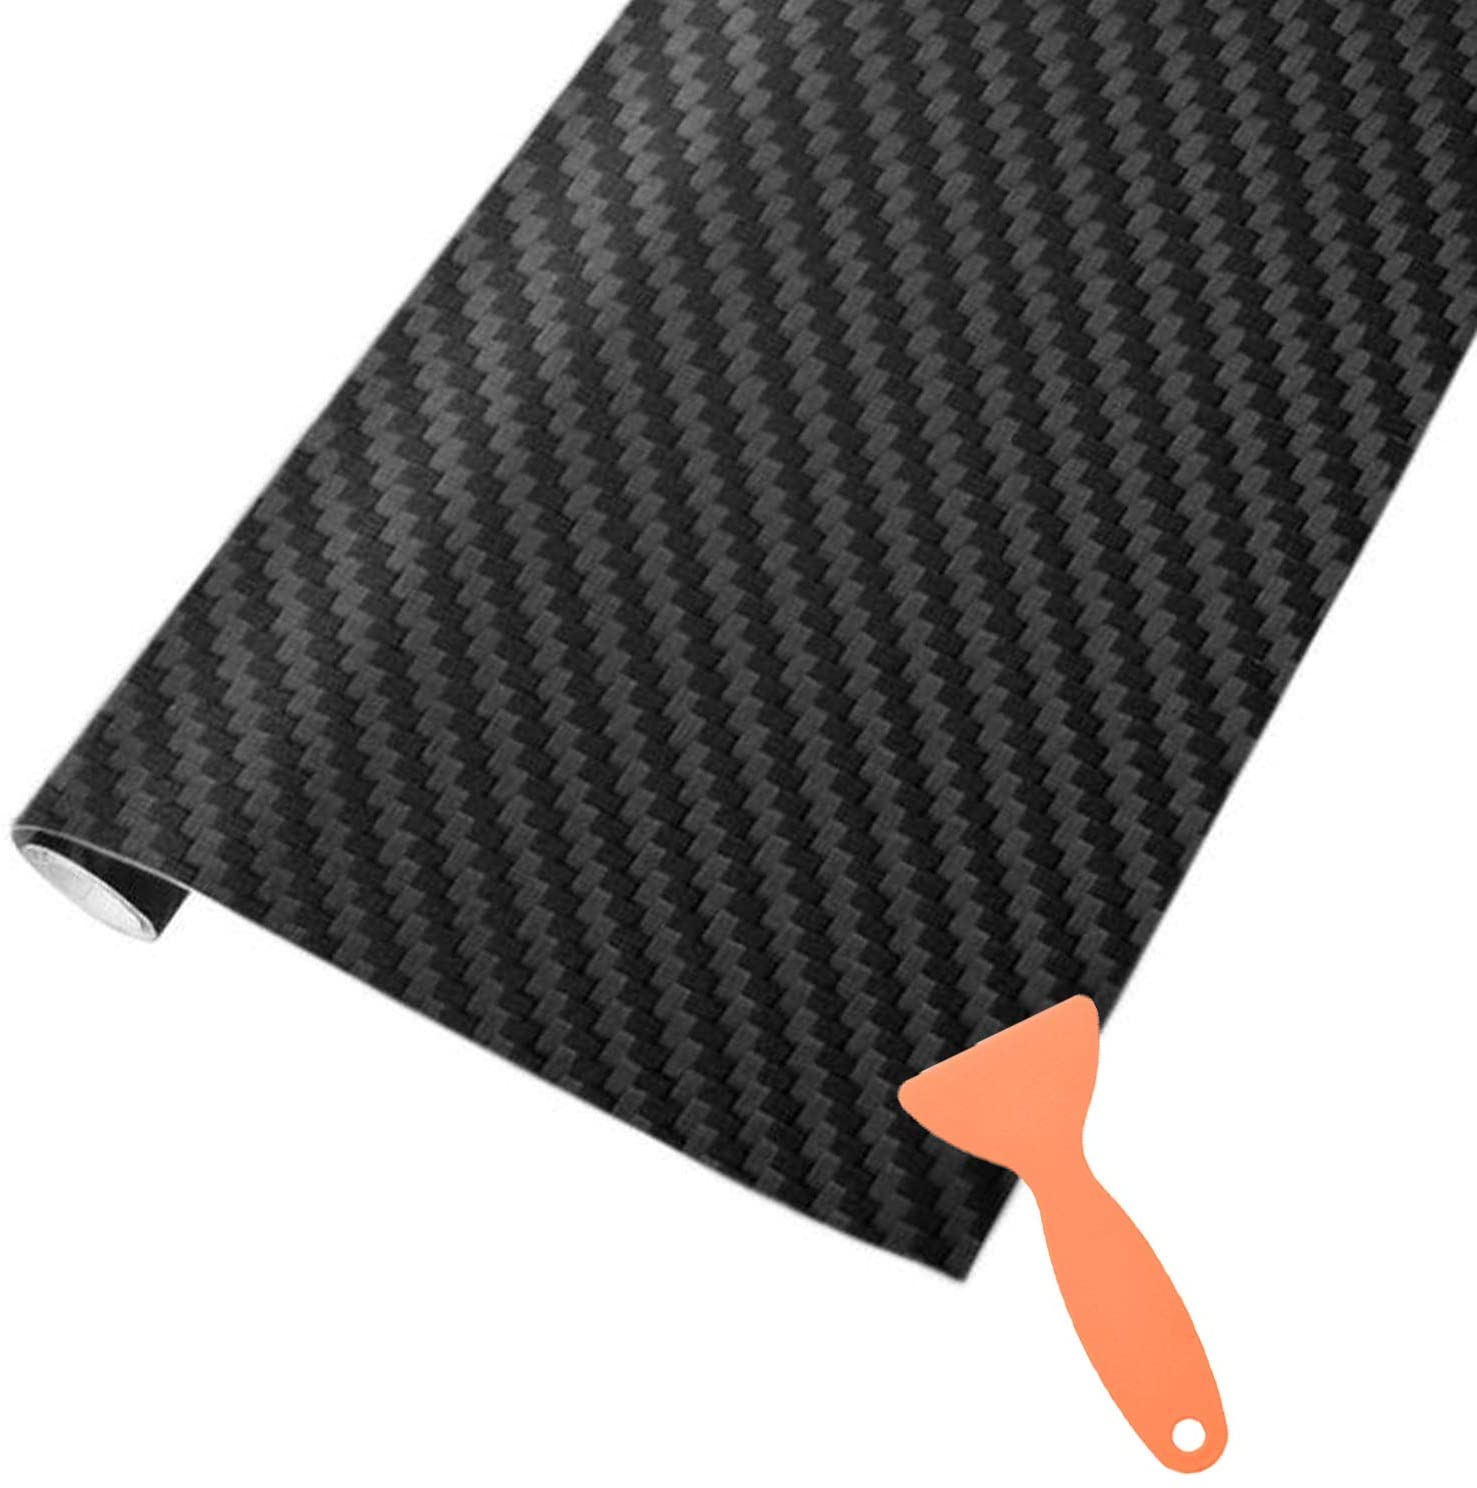 AOBETAK Carbon Fibre Vinyl Wrap Roll with Plastic Scrapers, 1500 x 300 mm Self-Adhesive Vinyl Sticker Tape for Cars Auto and Motorcycle DIY, Interior/Exterior, Textured 3d Effect, Matt Black